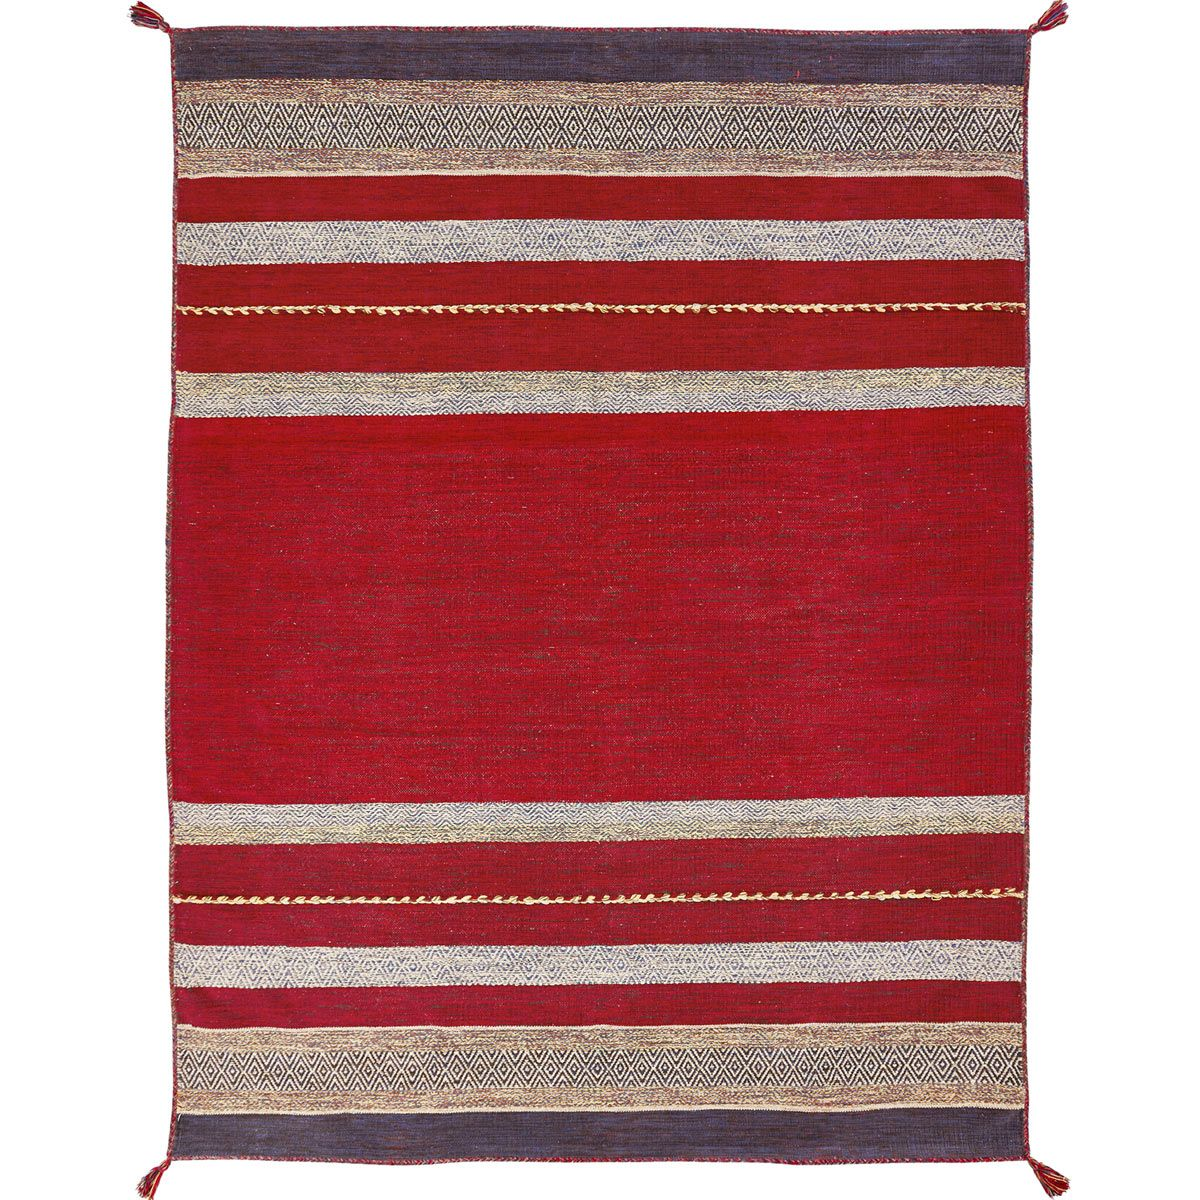 Corrales Stripes Rug - 3 x 10